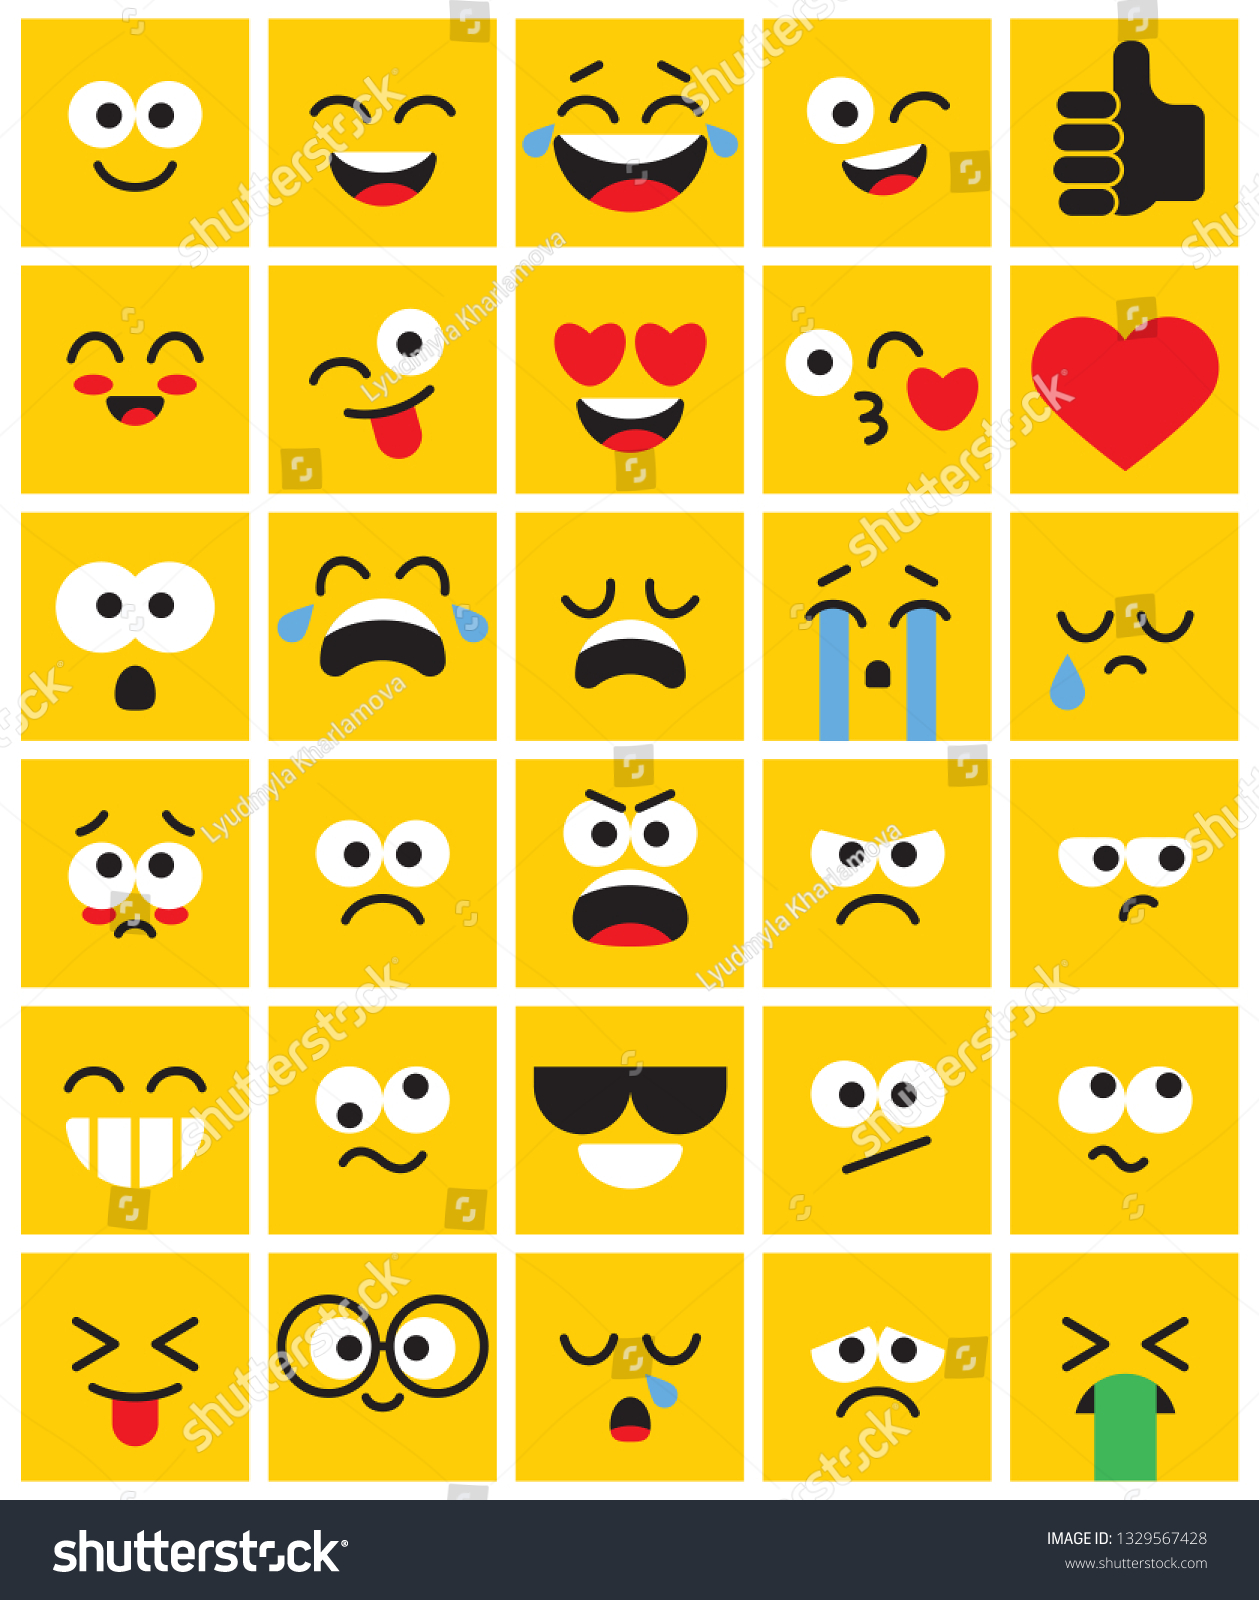 Emoji Square Pack Set Funny Classic Stock Vector (Royalty